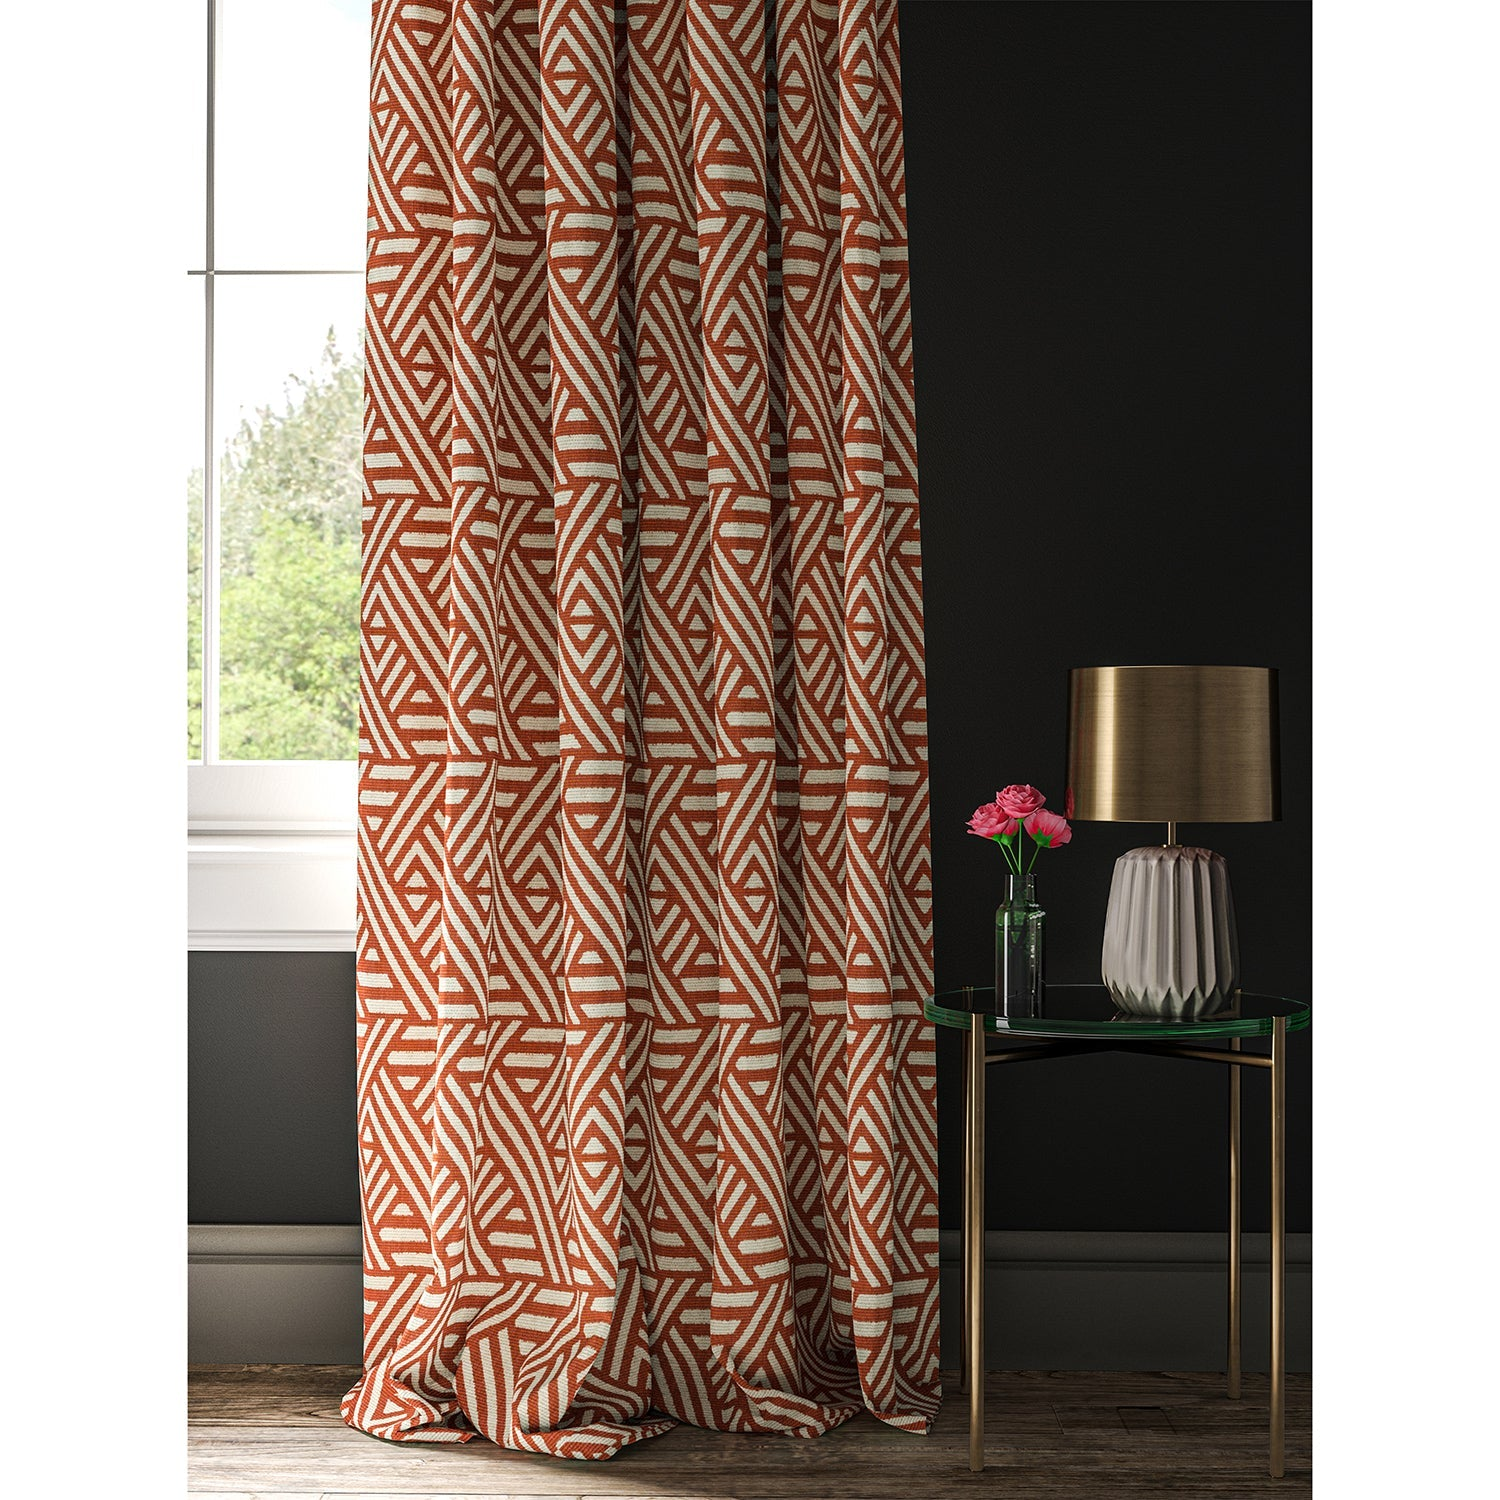 Curtain made with a orange and white geometric print fabric